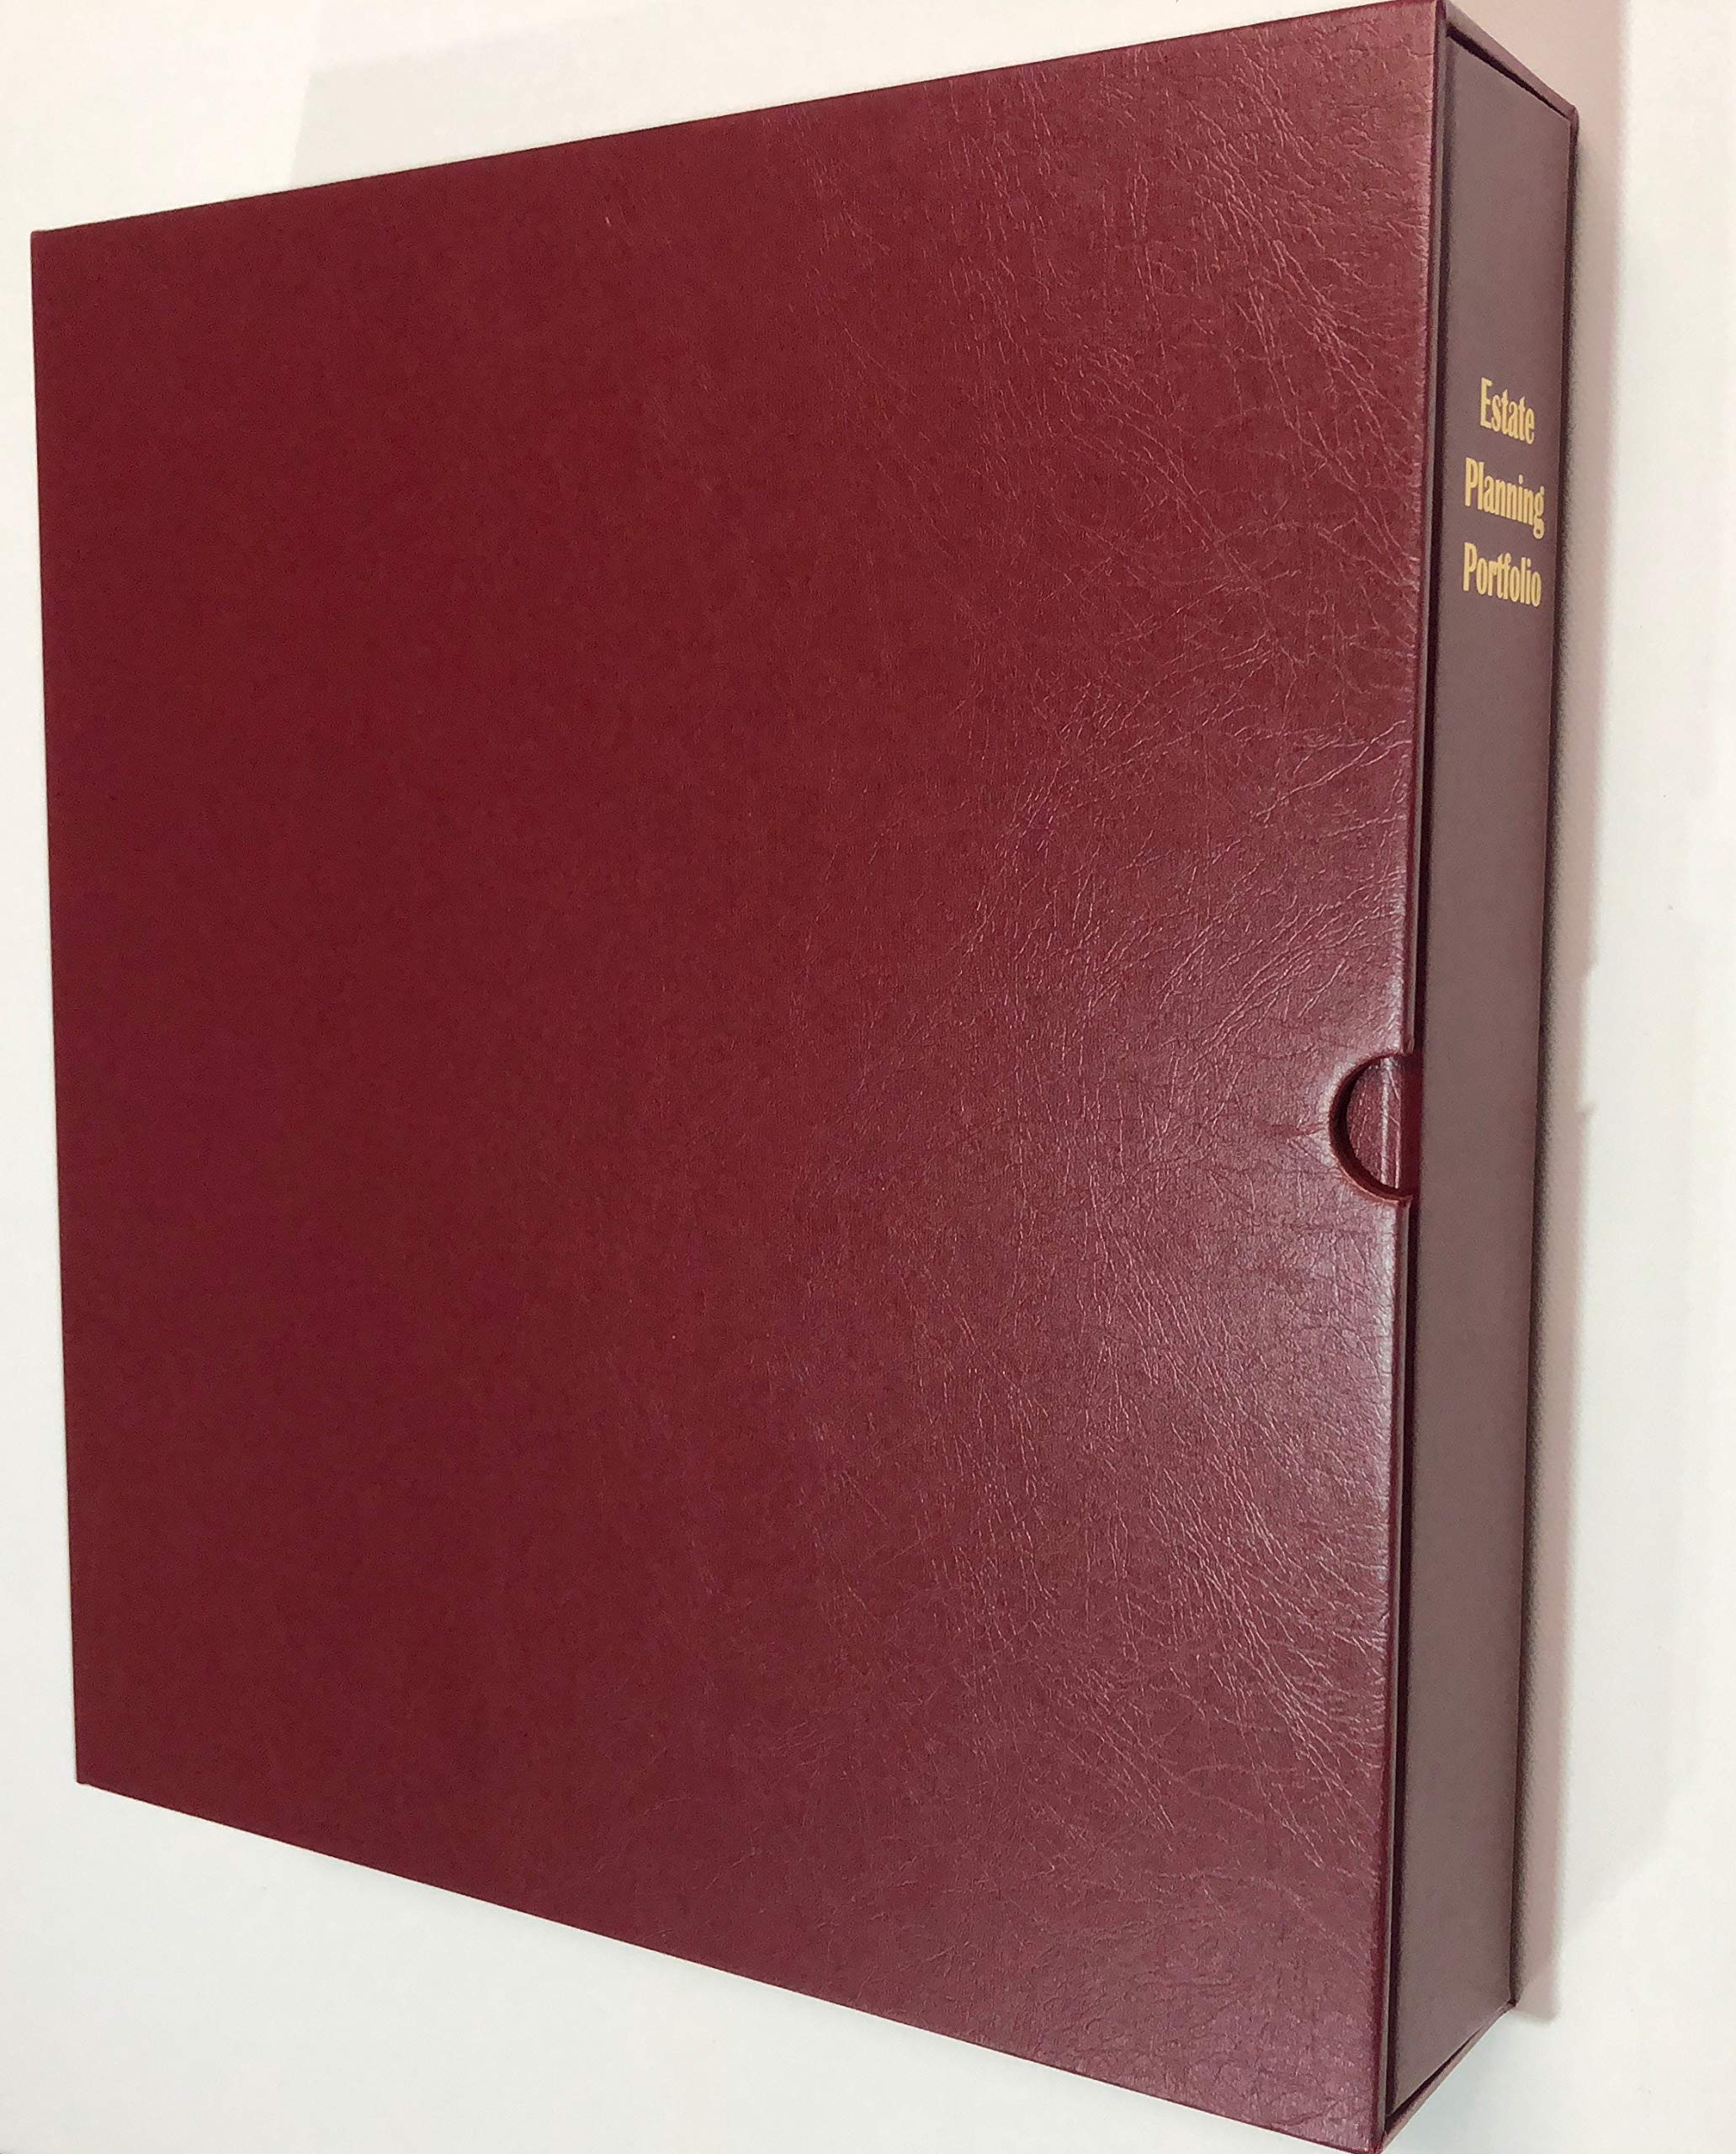 Estate Planning Portfolio Binder with Tabs and Slipcase by Corp Paper Products